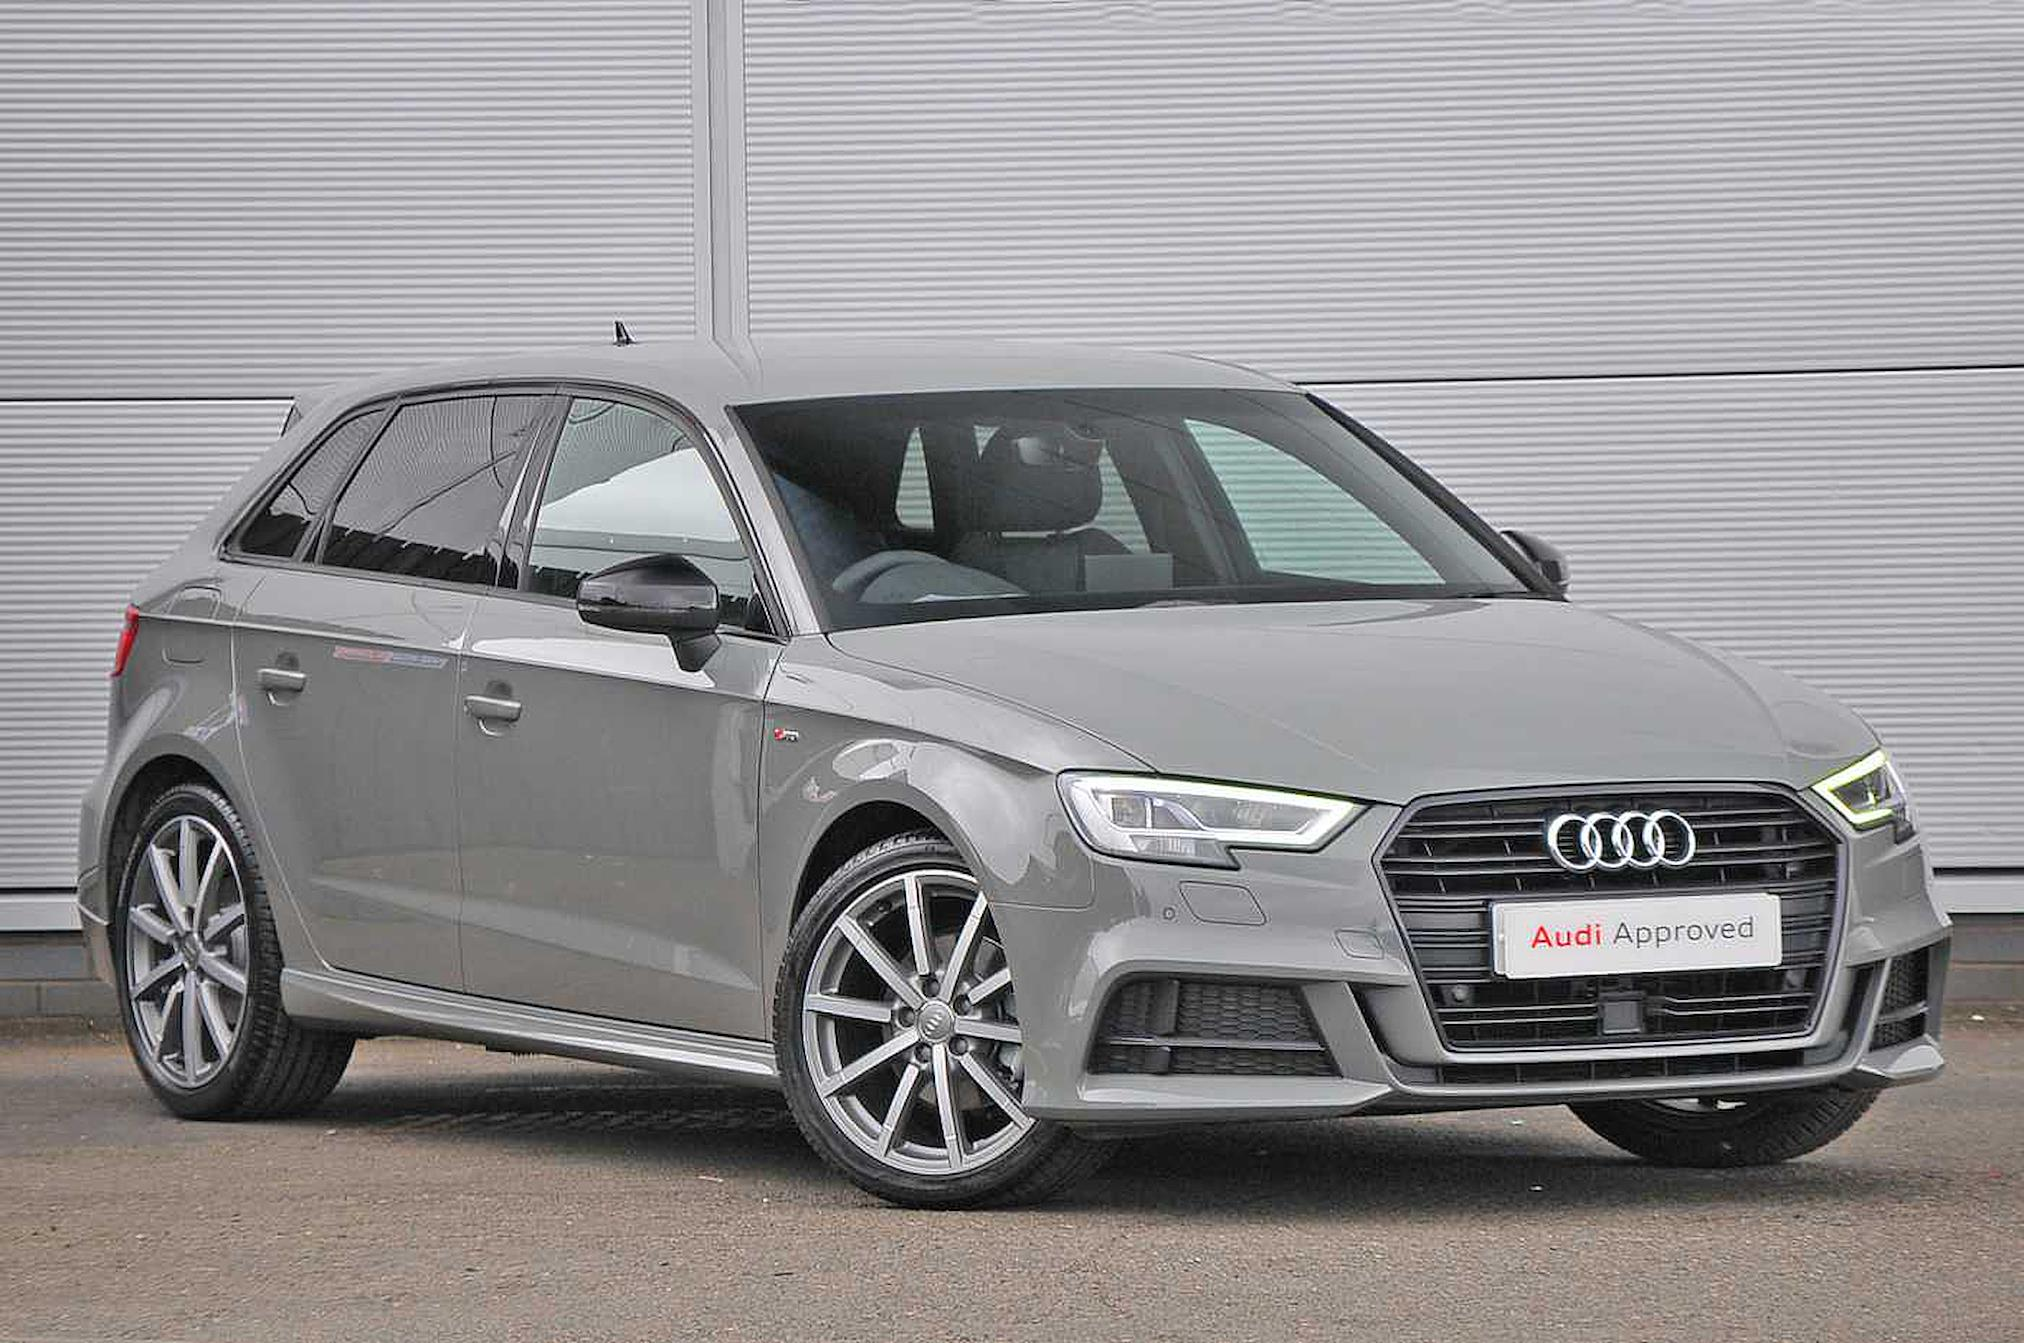 Nearly New A3 Audi Black Edition 35 Tfsi 150 Ps 6 Speed 2019 Lookers